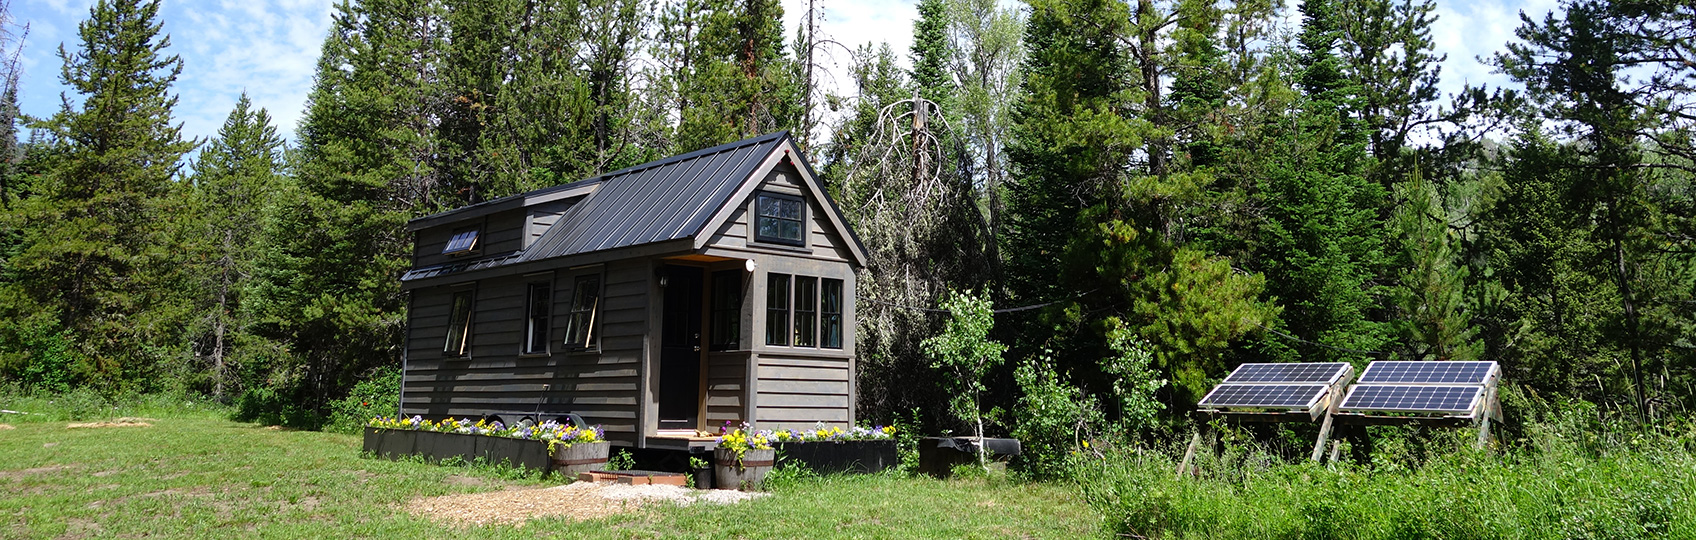 tiny homes for sale vermont